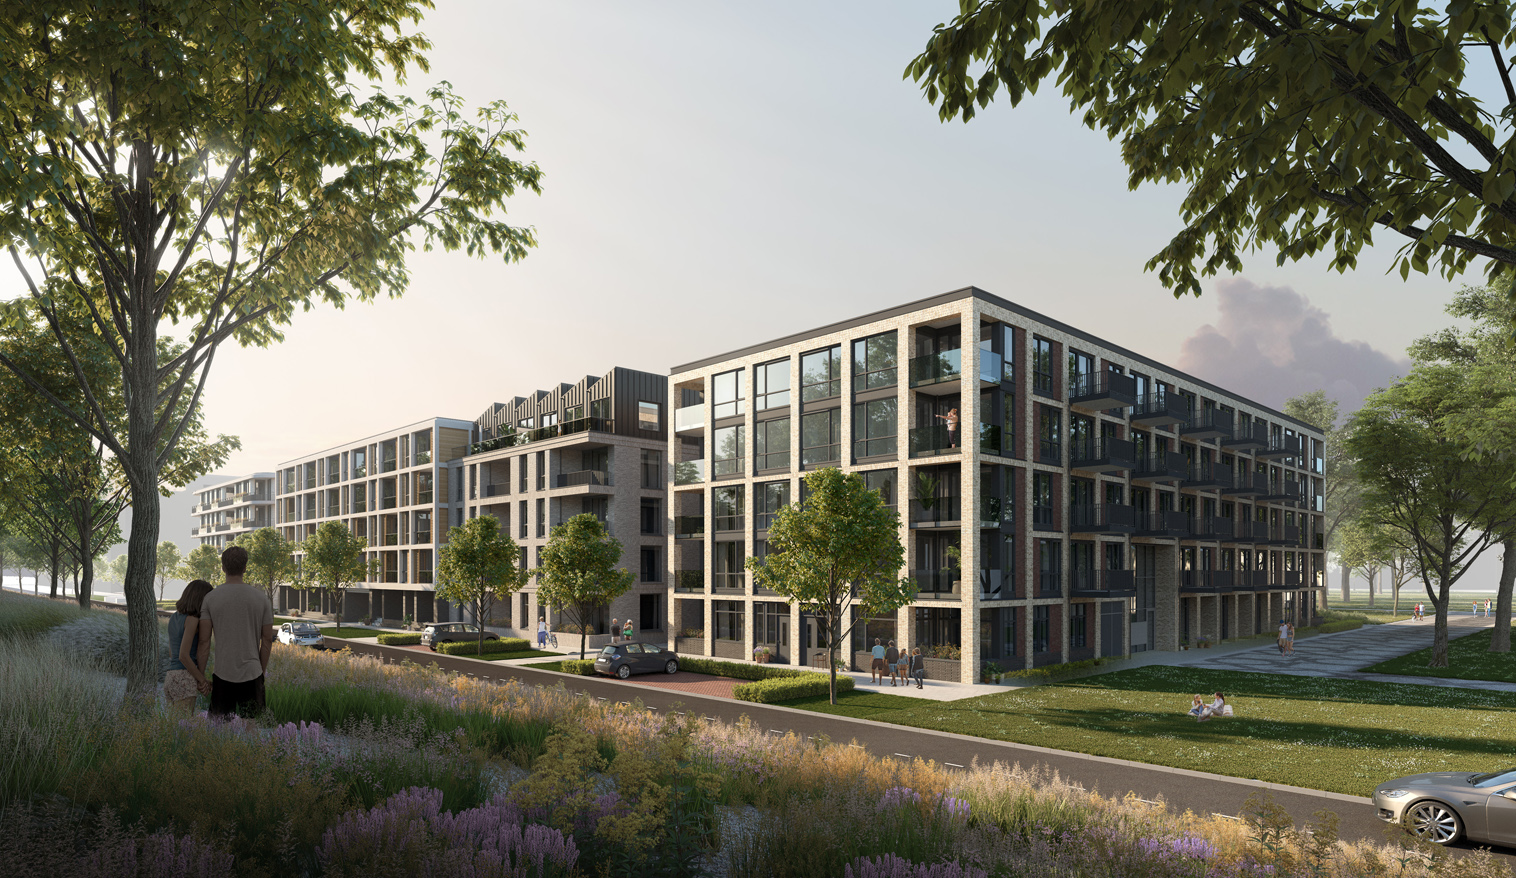 03 OPL Architecten_Cartesius Utrecht-1516×878-72dpi